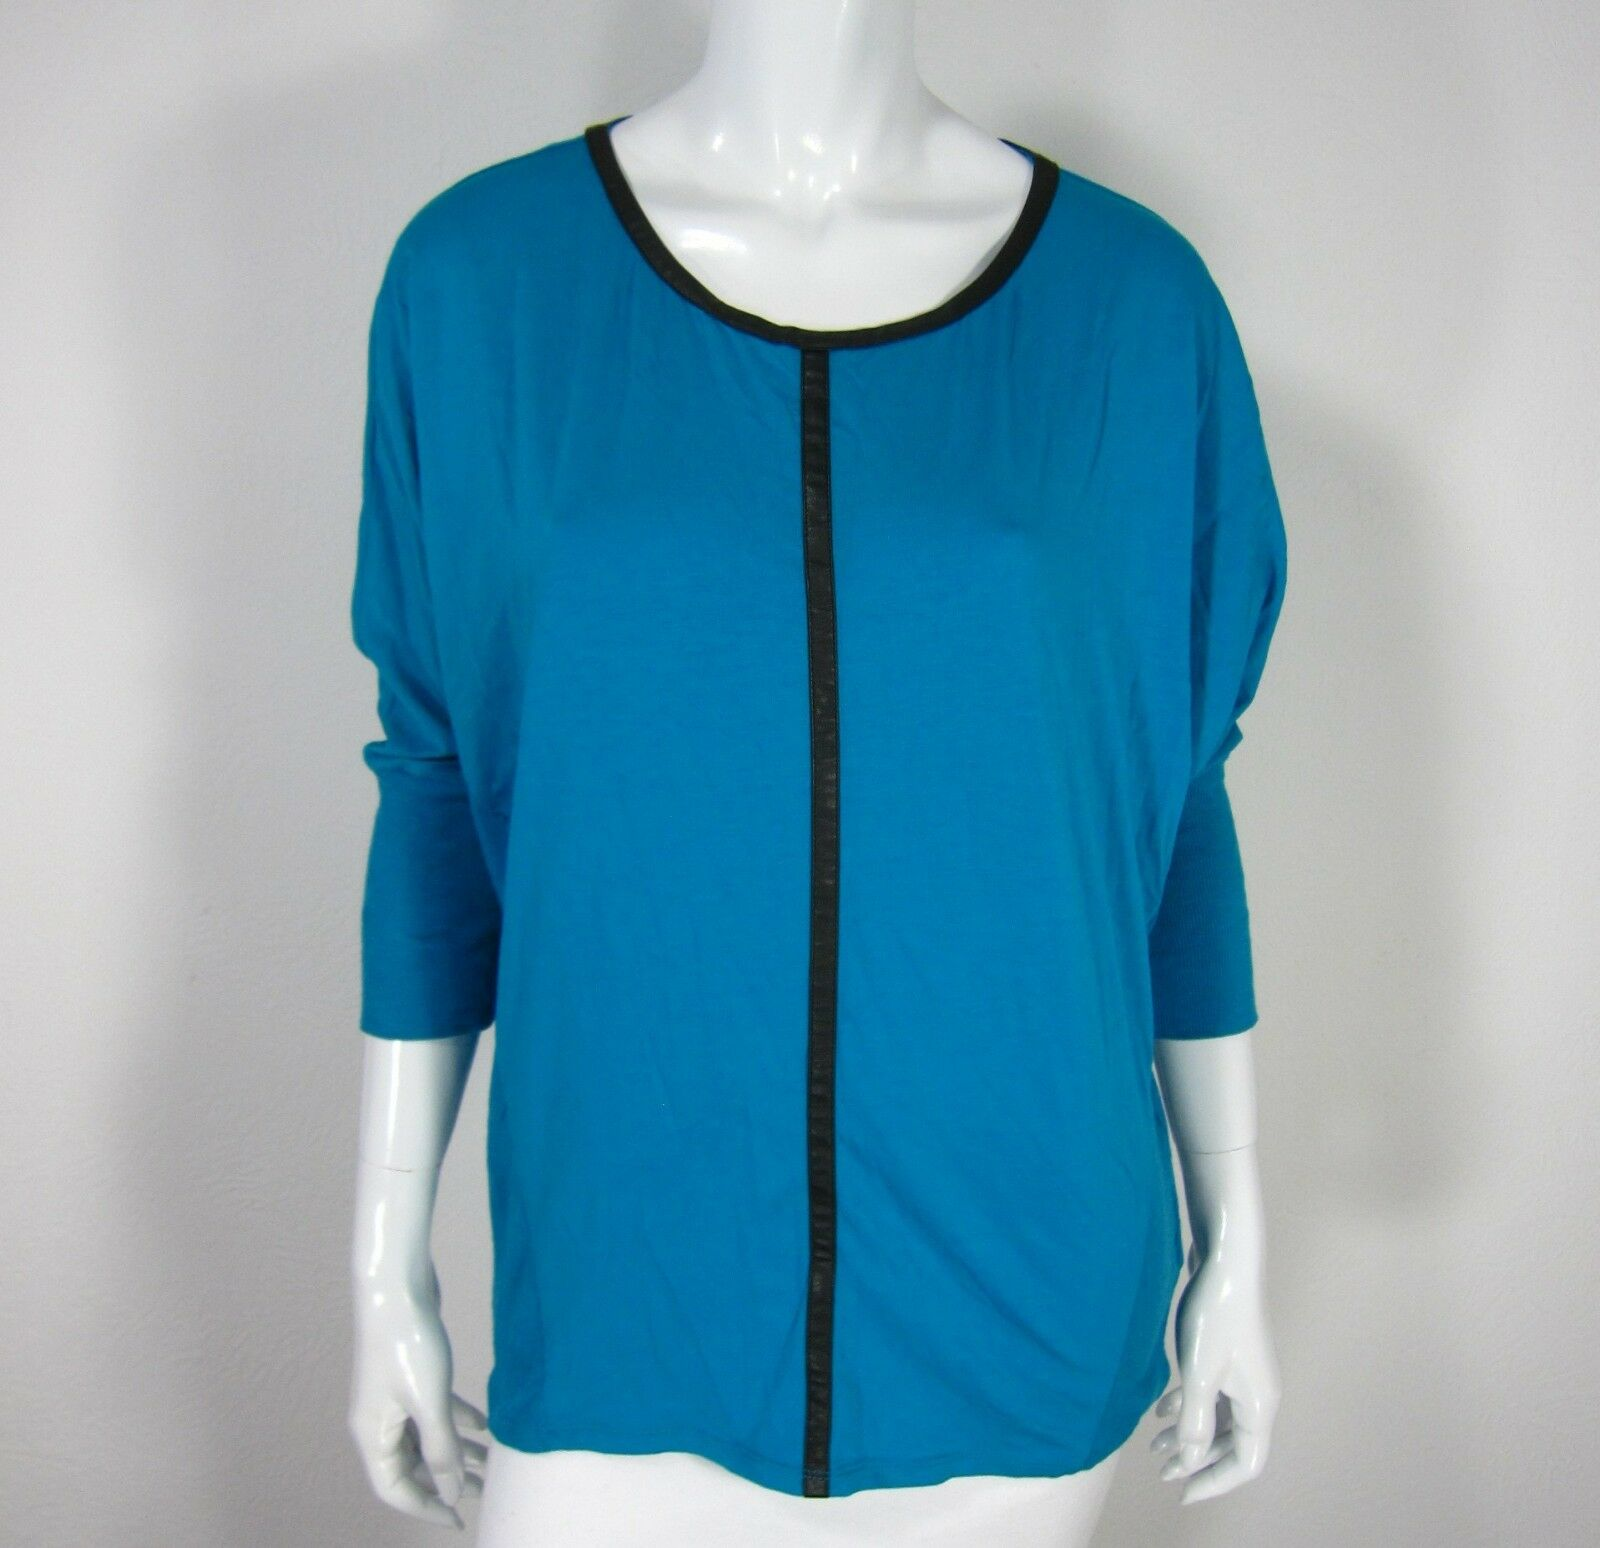 Two By Vince Camuto NWT Long Sleeve Blouse Größe L Large Solid Teal Crew neck